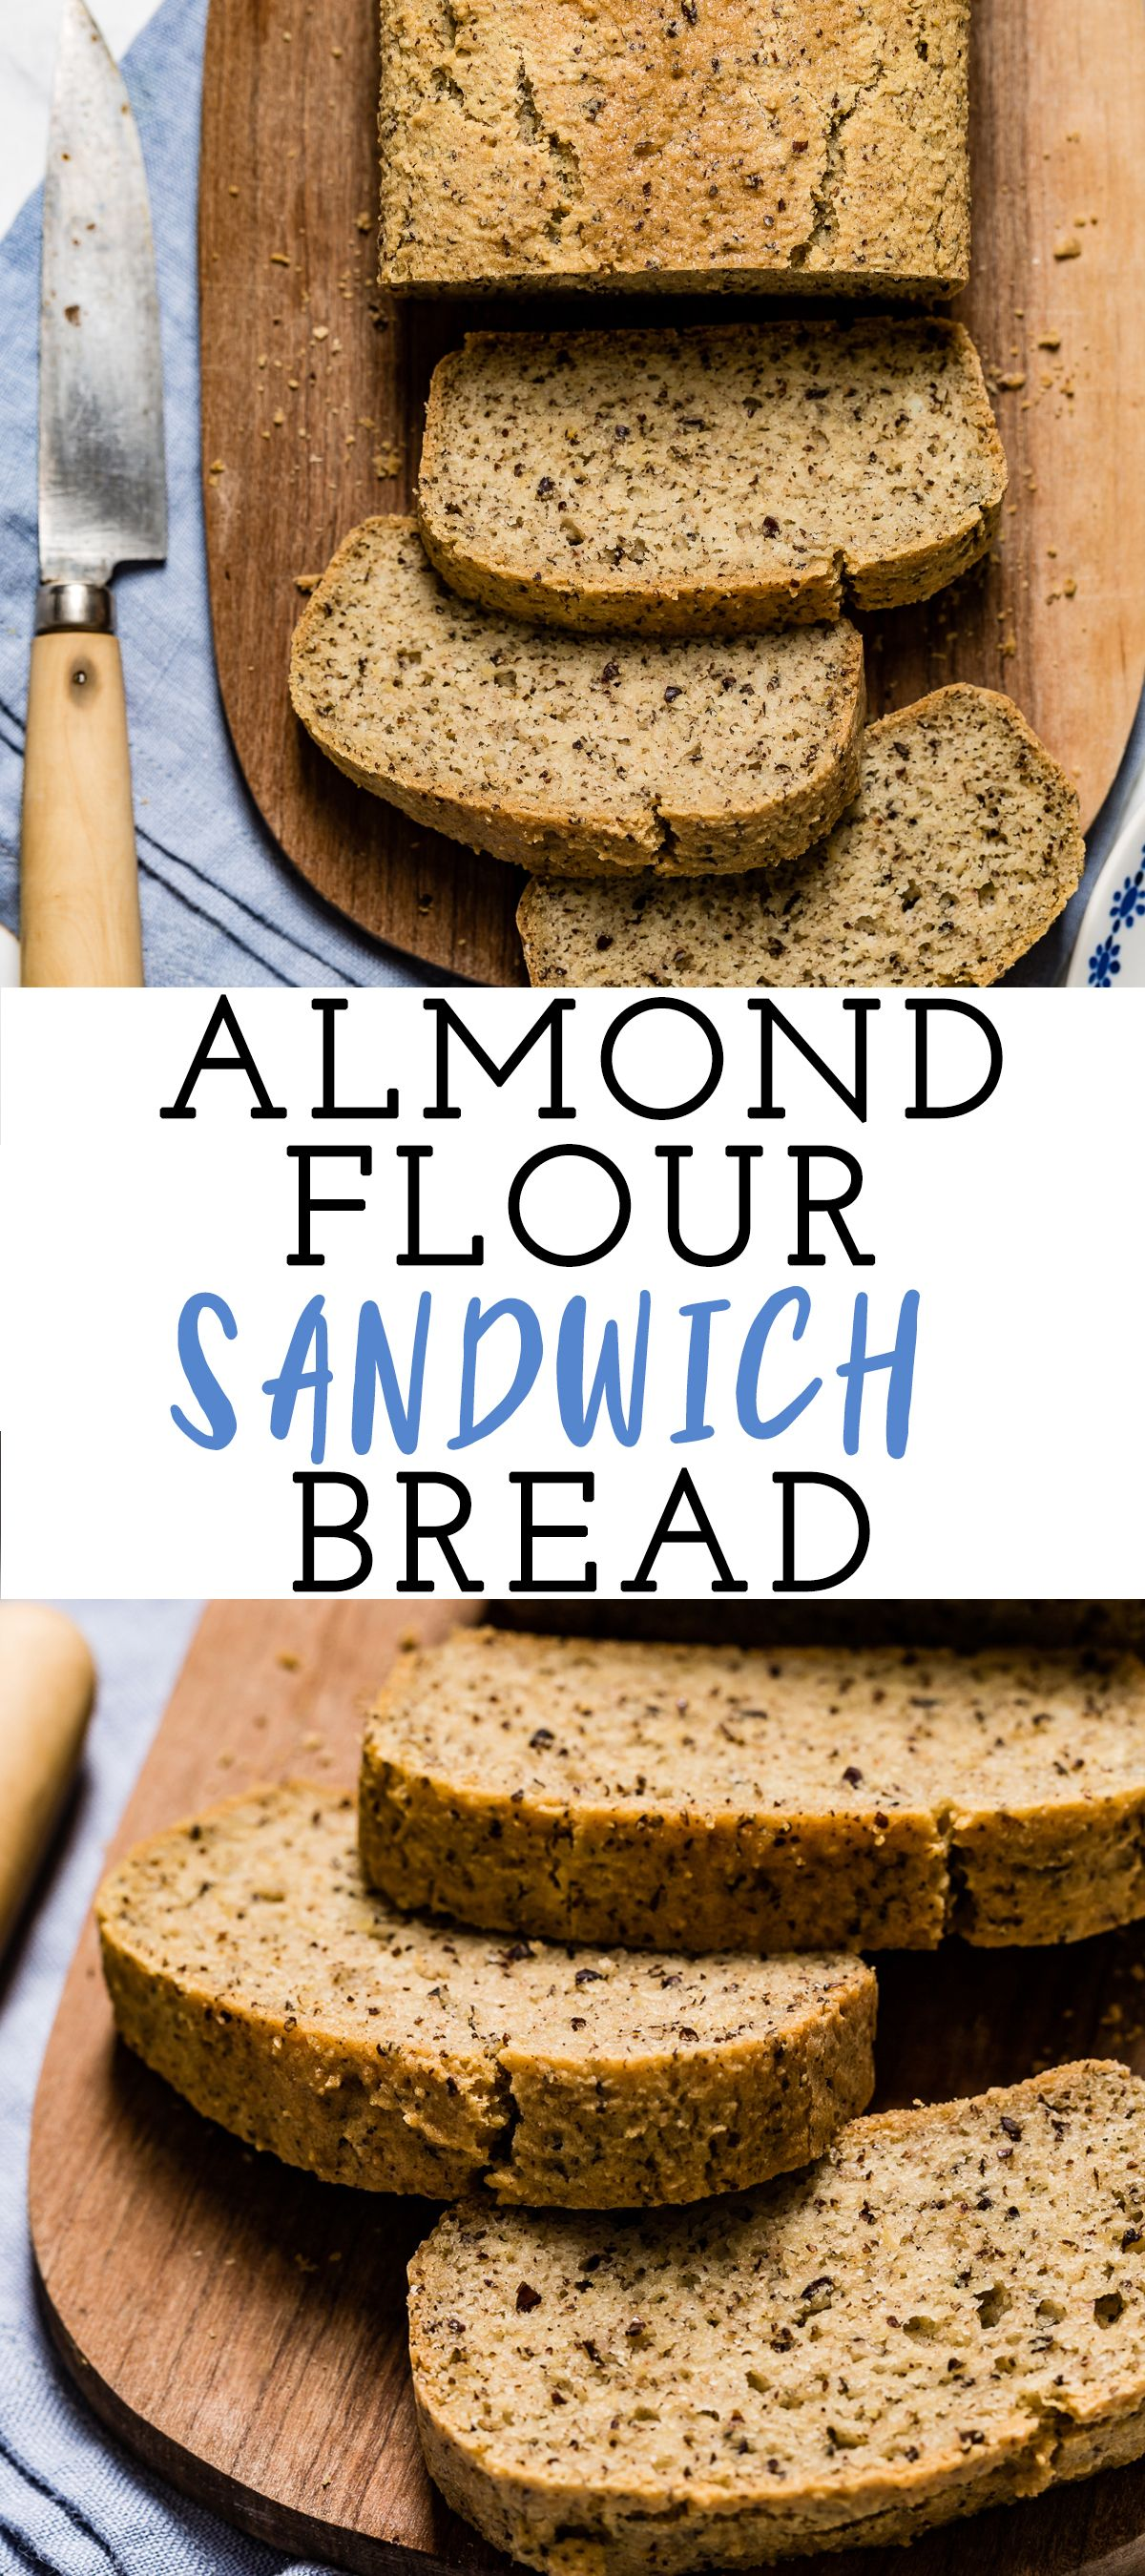 Easy And Quick Low Carb Almond Flour Bread Recipe Recipe In 2020 Almond Flour Bread Recipes Almond Recipes Almond Bread Recipe